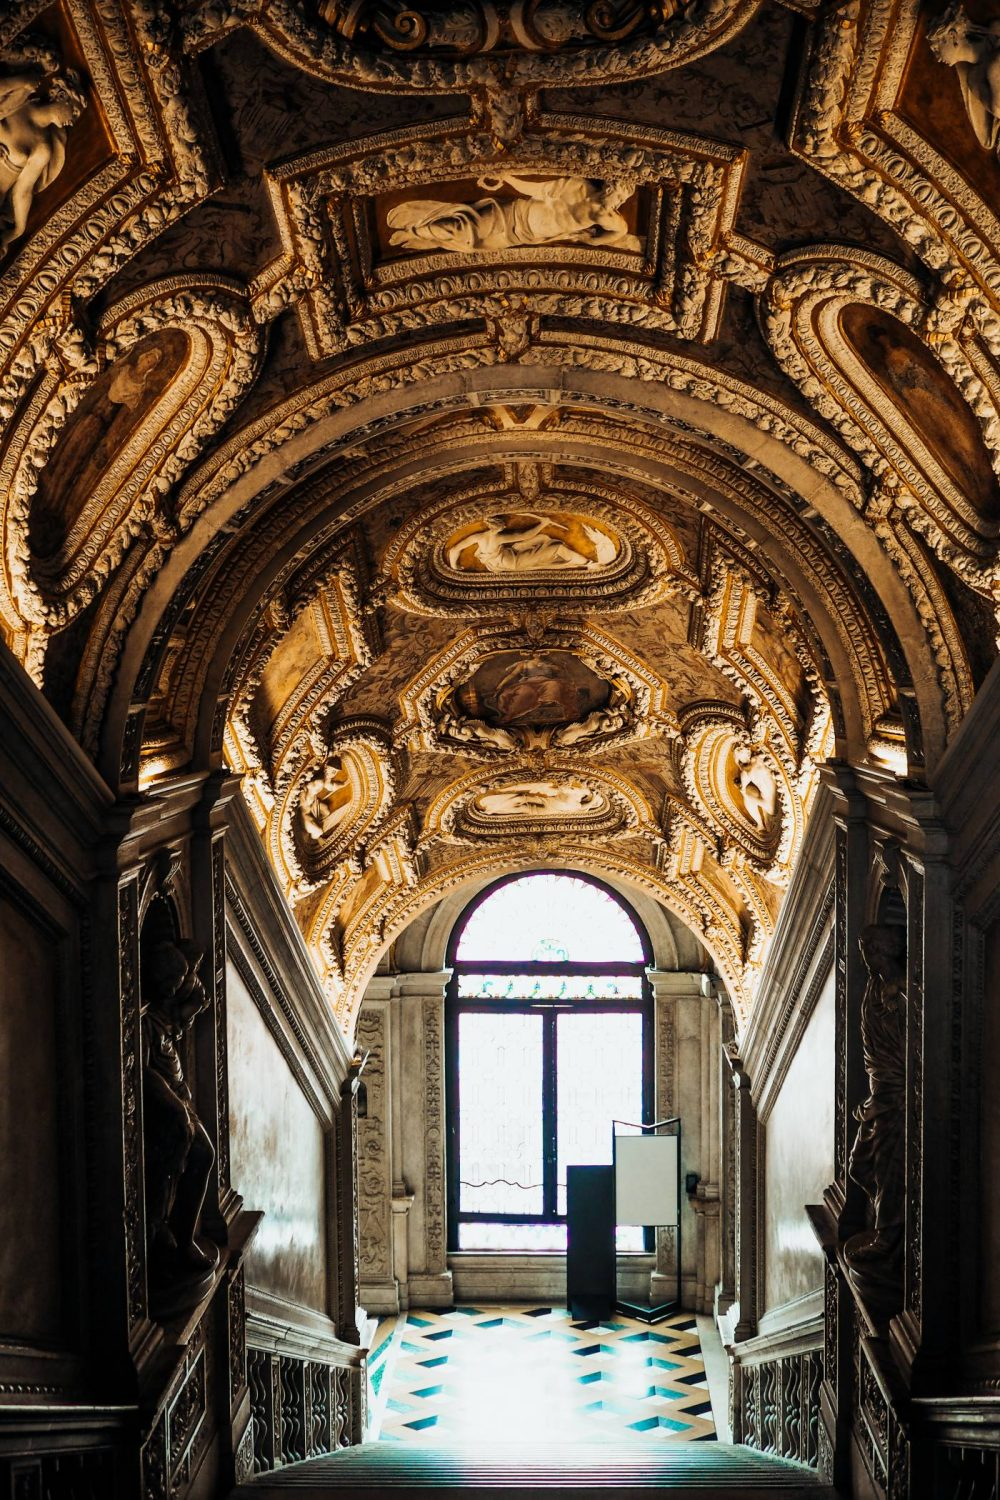 The Golden Staircase in Palazzo Ducale